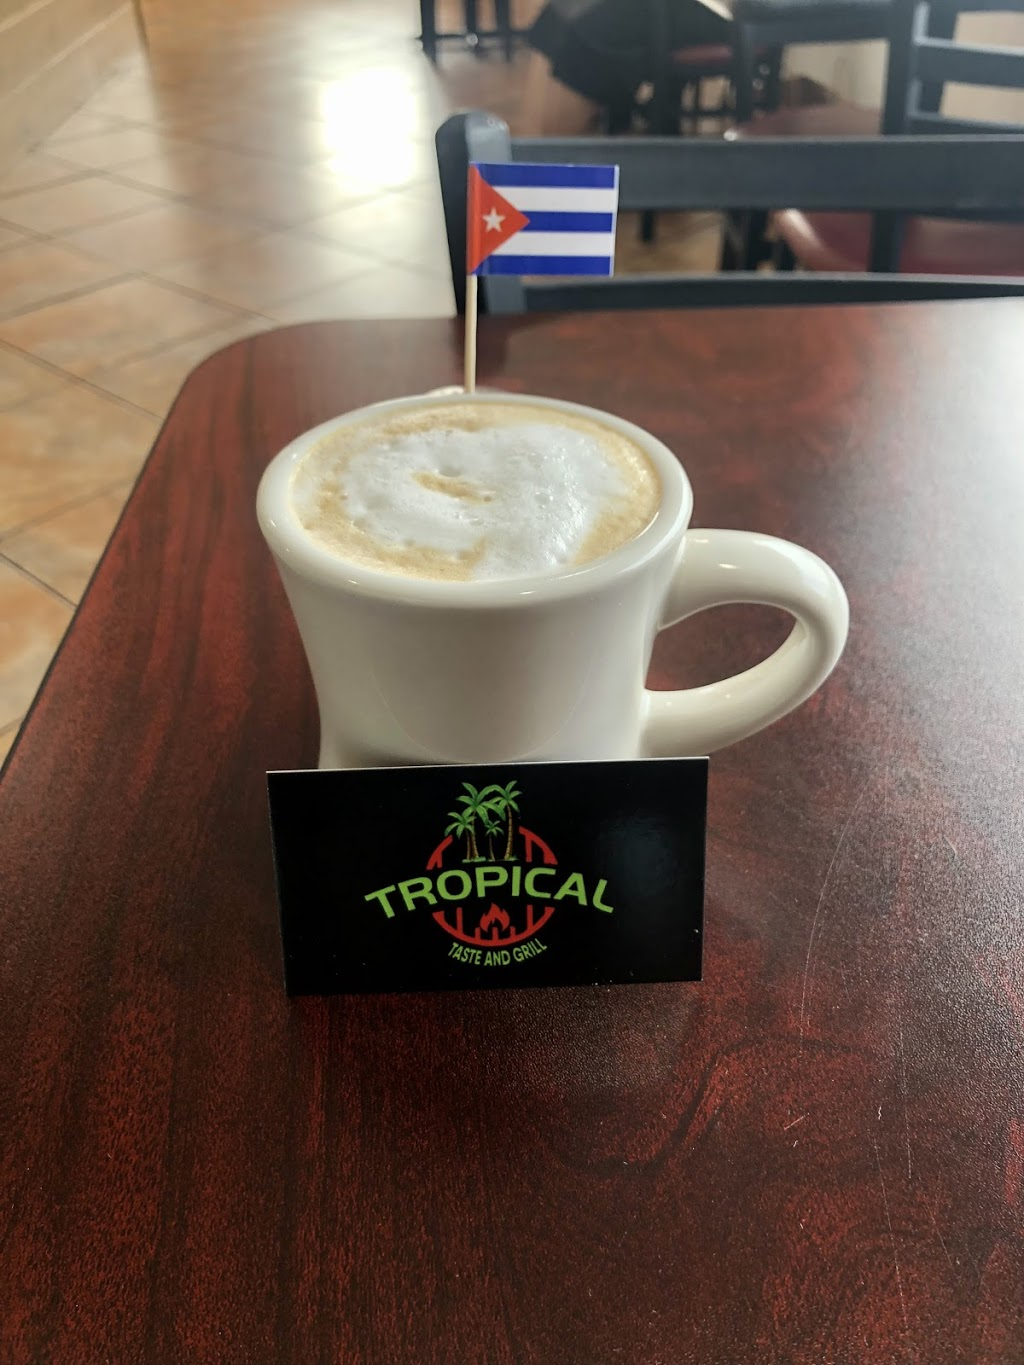 Tropical Taste and Grill | restaurant | 1716 Airport-Pulling Rd, Naples, FL 34104, USA | 2393849157 OR +1 239-384-9157